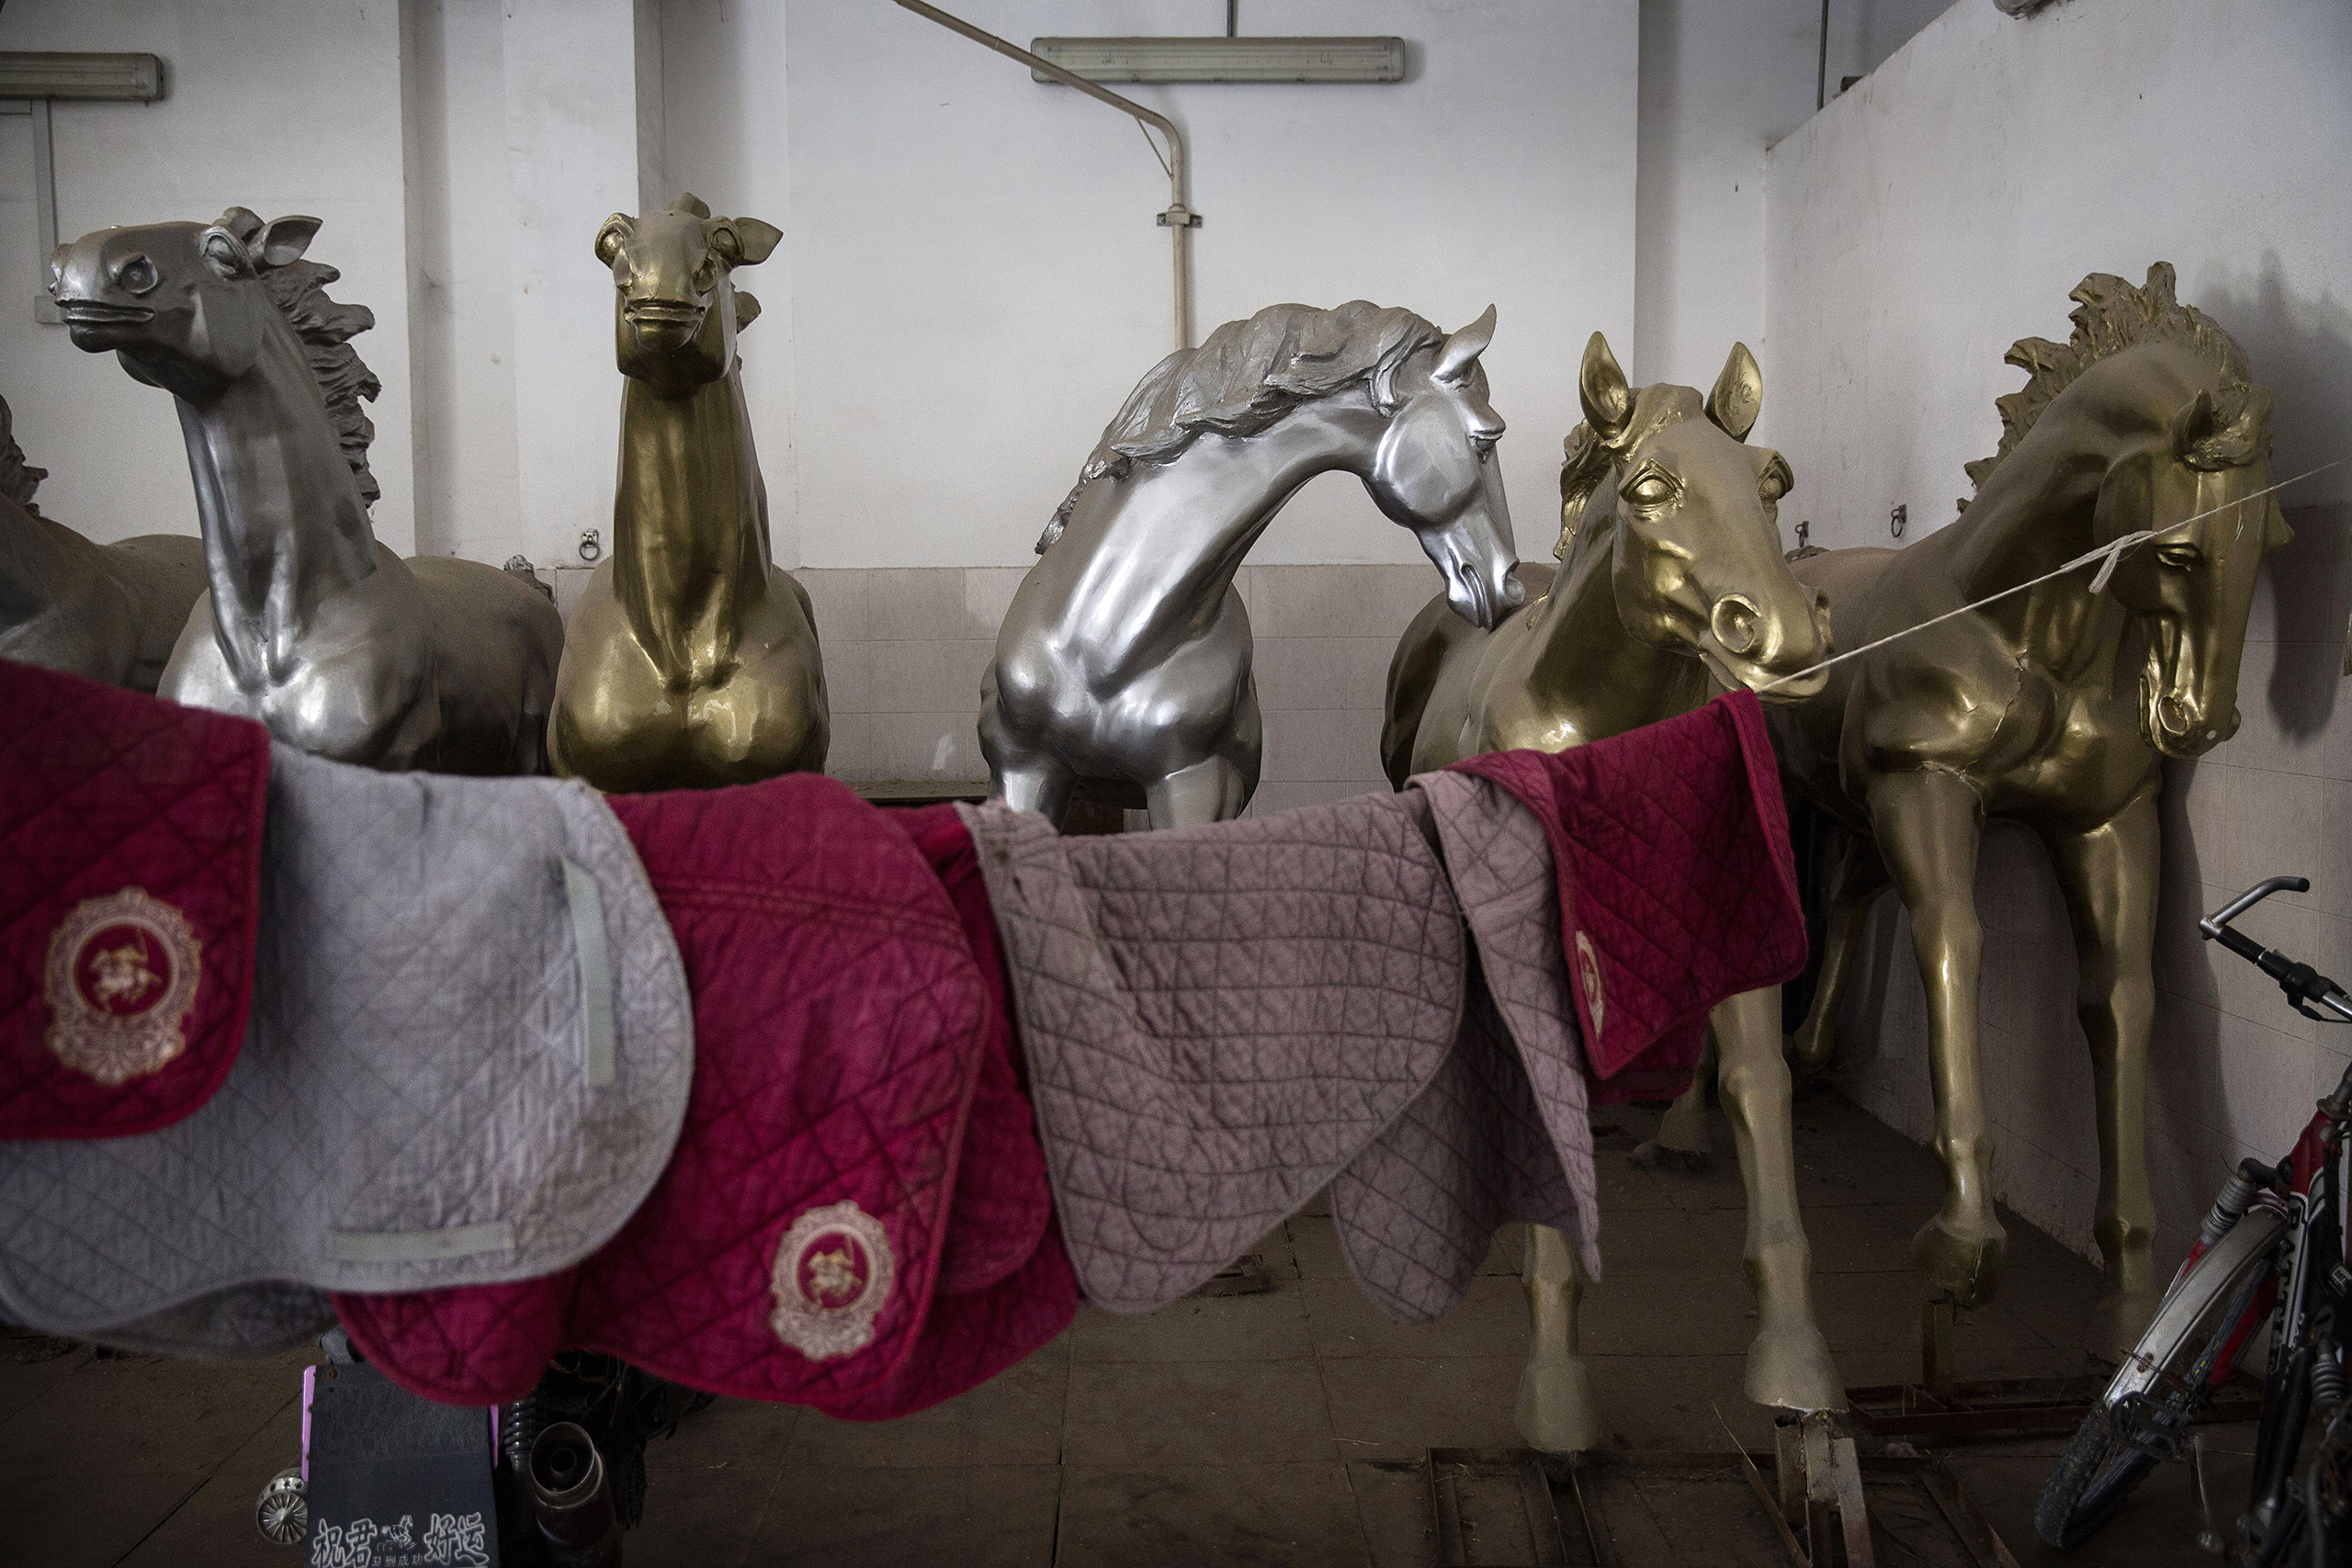 Painted horse sculptures are seen in the stables at the Tianjin Goldin Metropolitan Polo Club in Tianjin, China, on July 16, 2016.